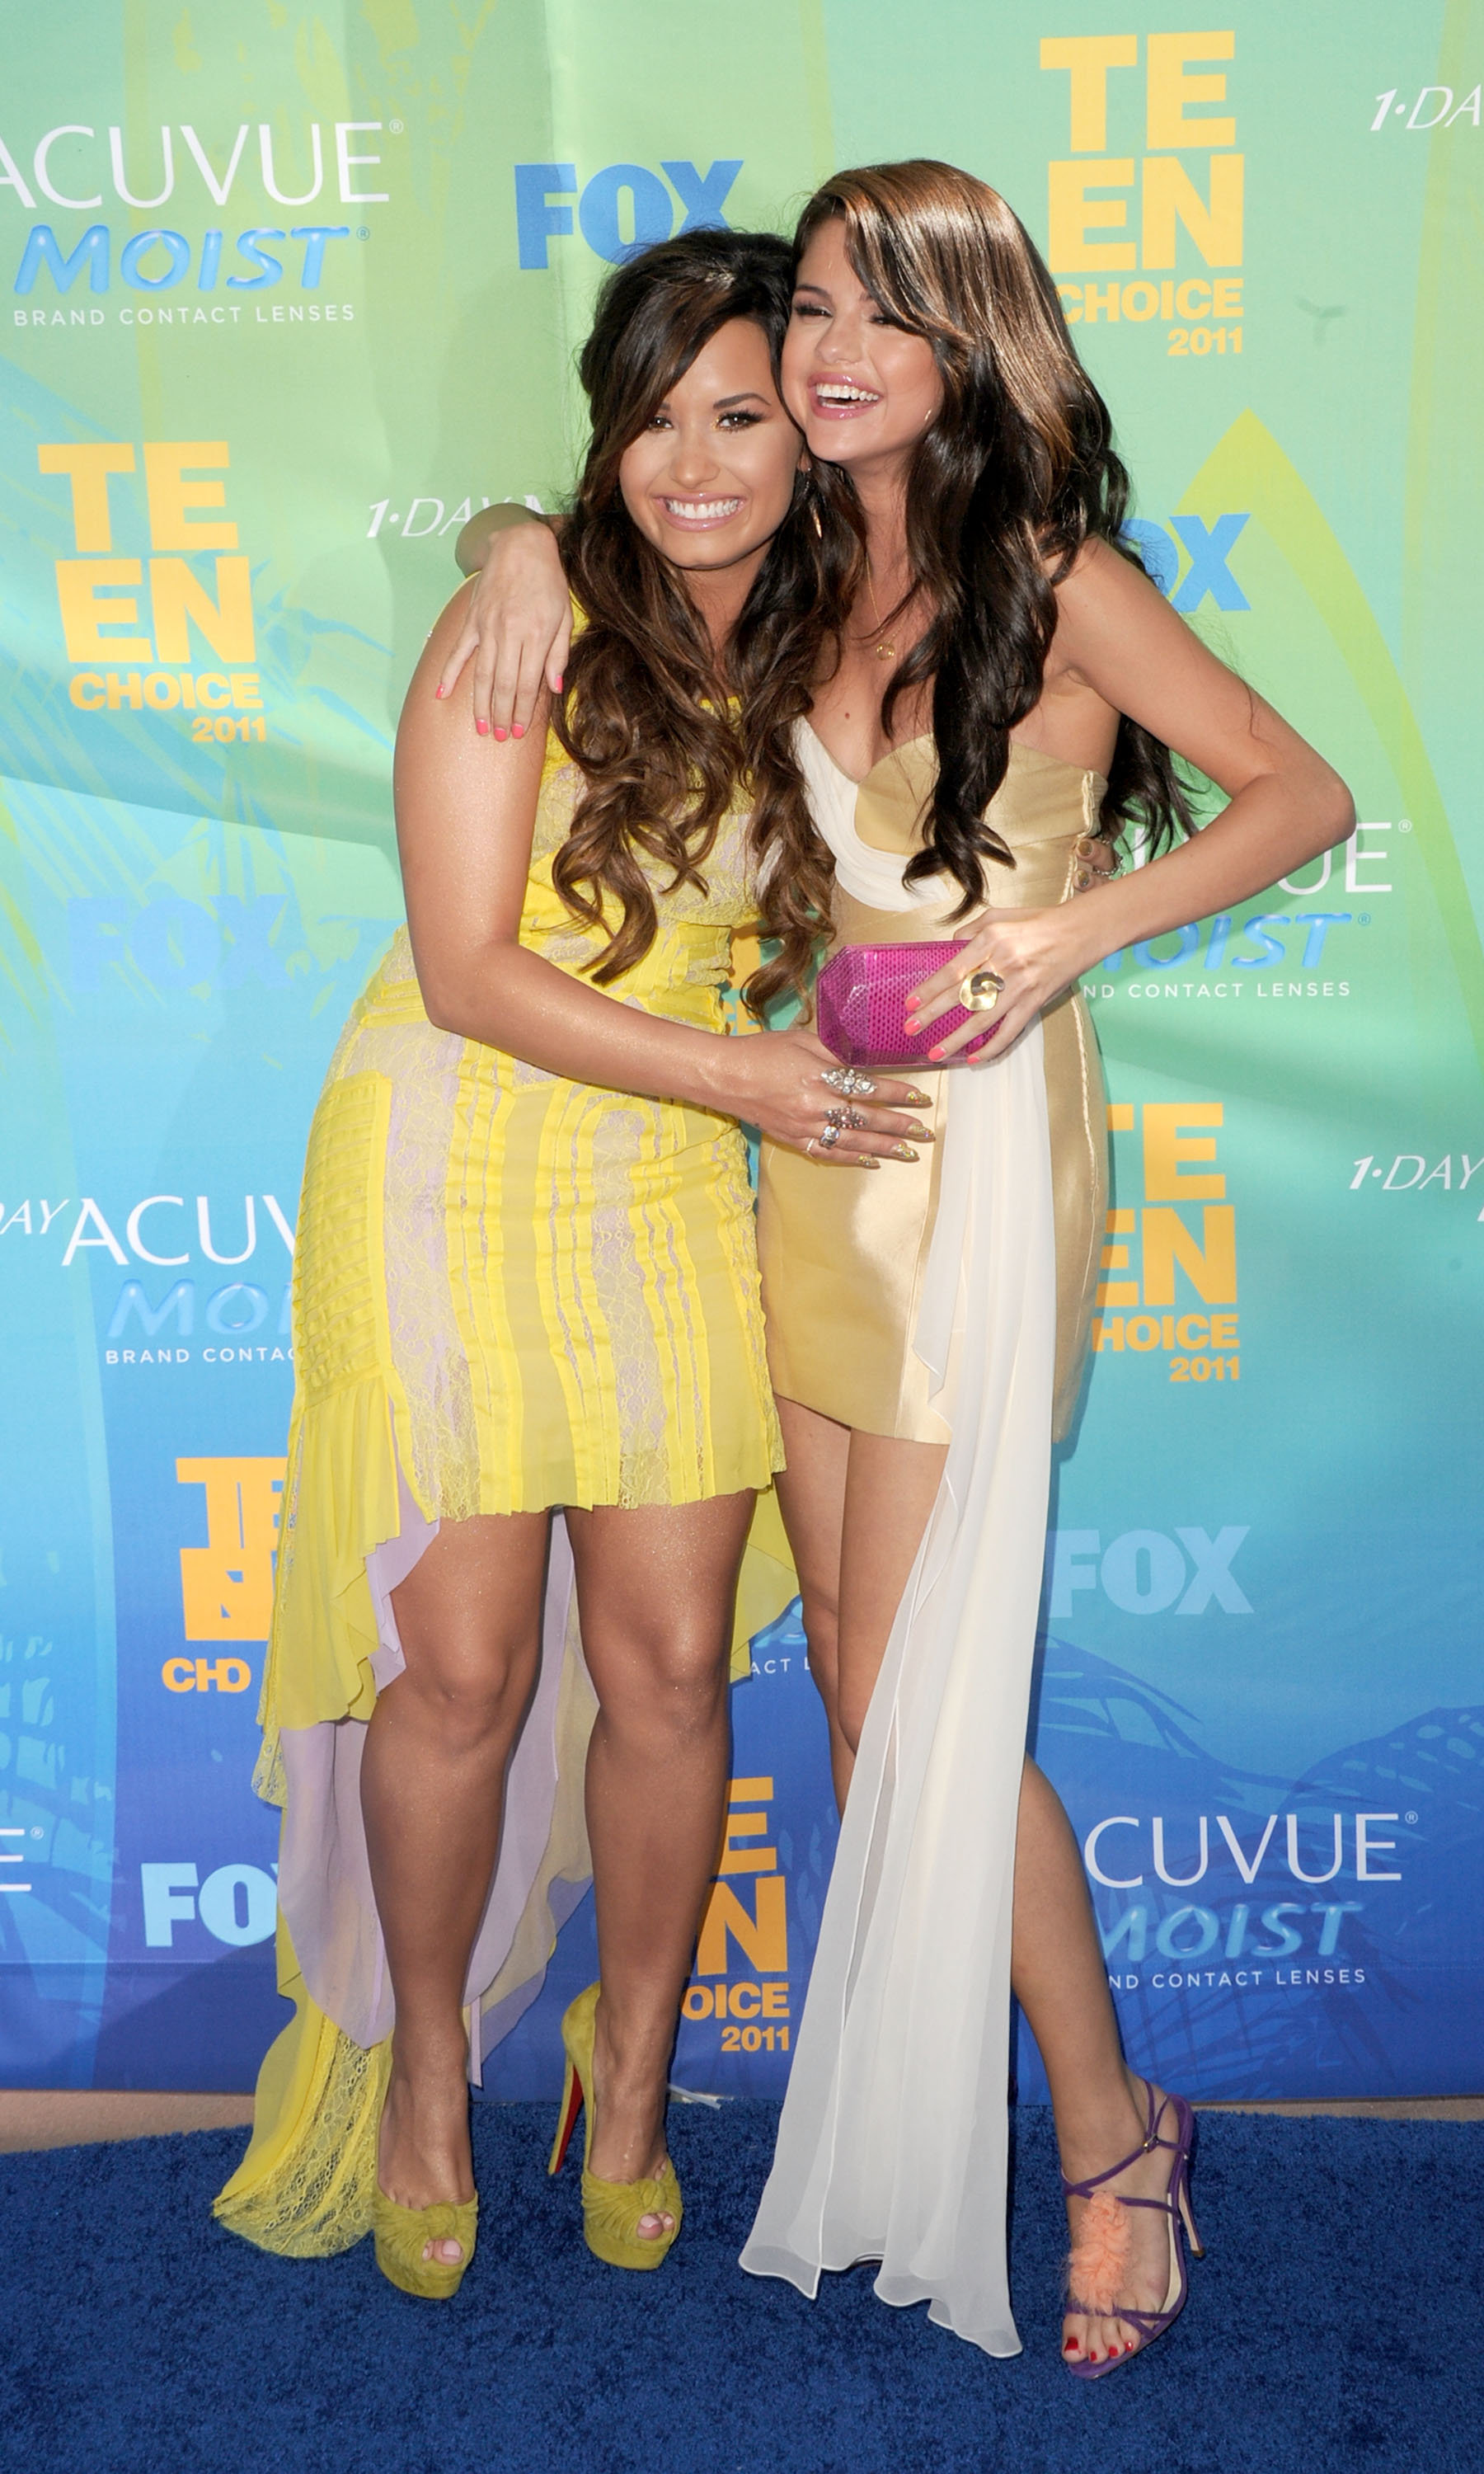 Actresses/singers Demi Lovato and Selena Gomez arrive at the 2011 Teen Choice Awards back when they were still close friends (Getty Images)